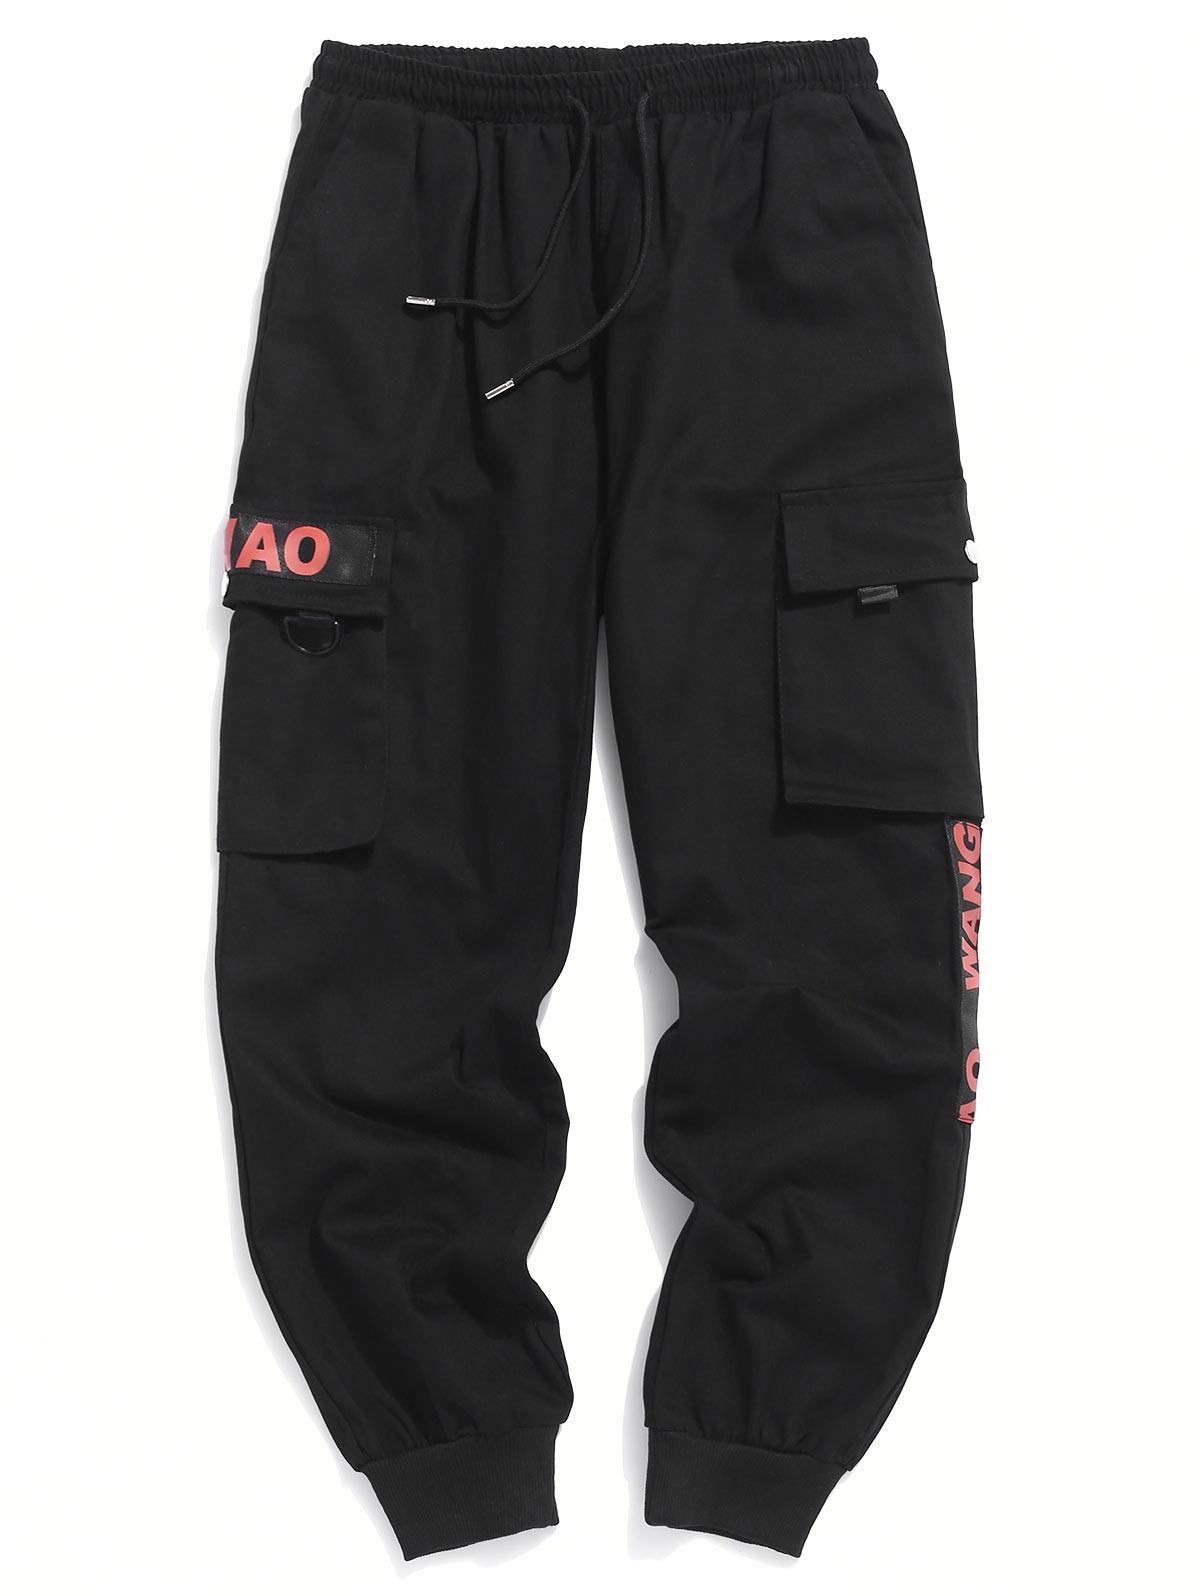 Letter Print Multi-pocket Casual Jogger Pants